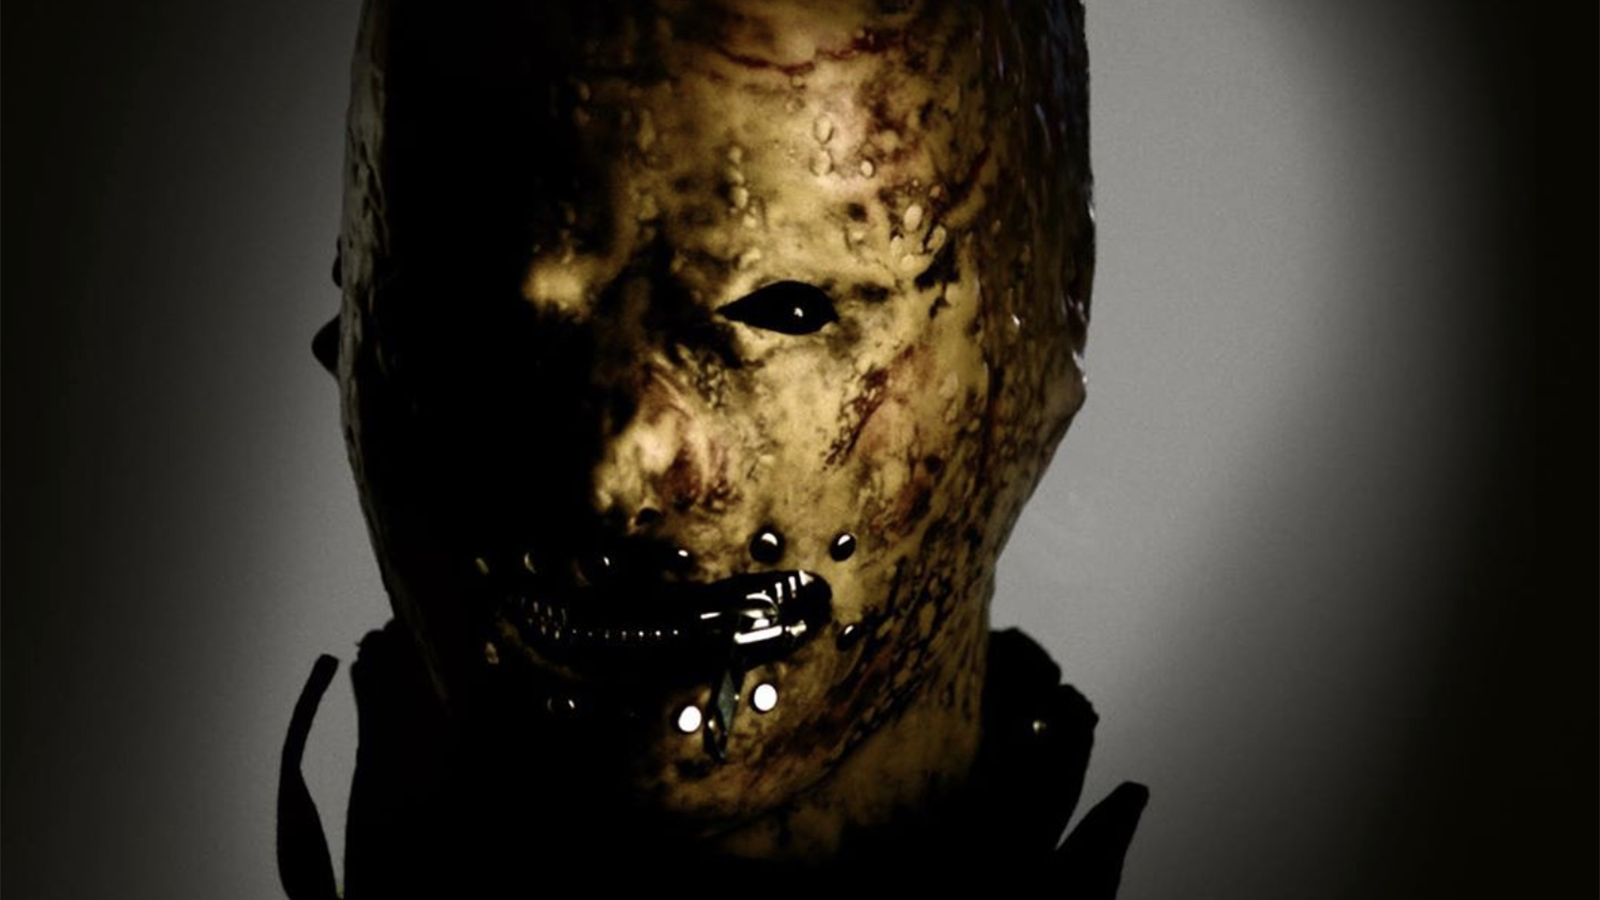 Fan Poll: Top 5 Theories About Slipknot's New Mystery Member